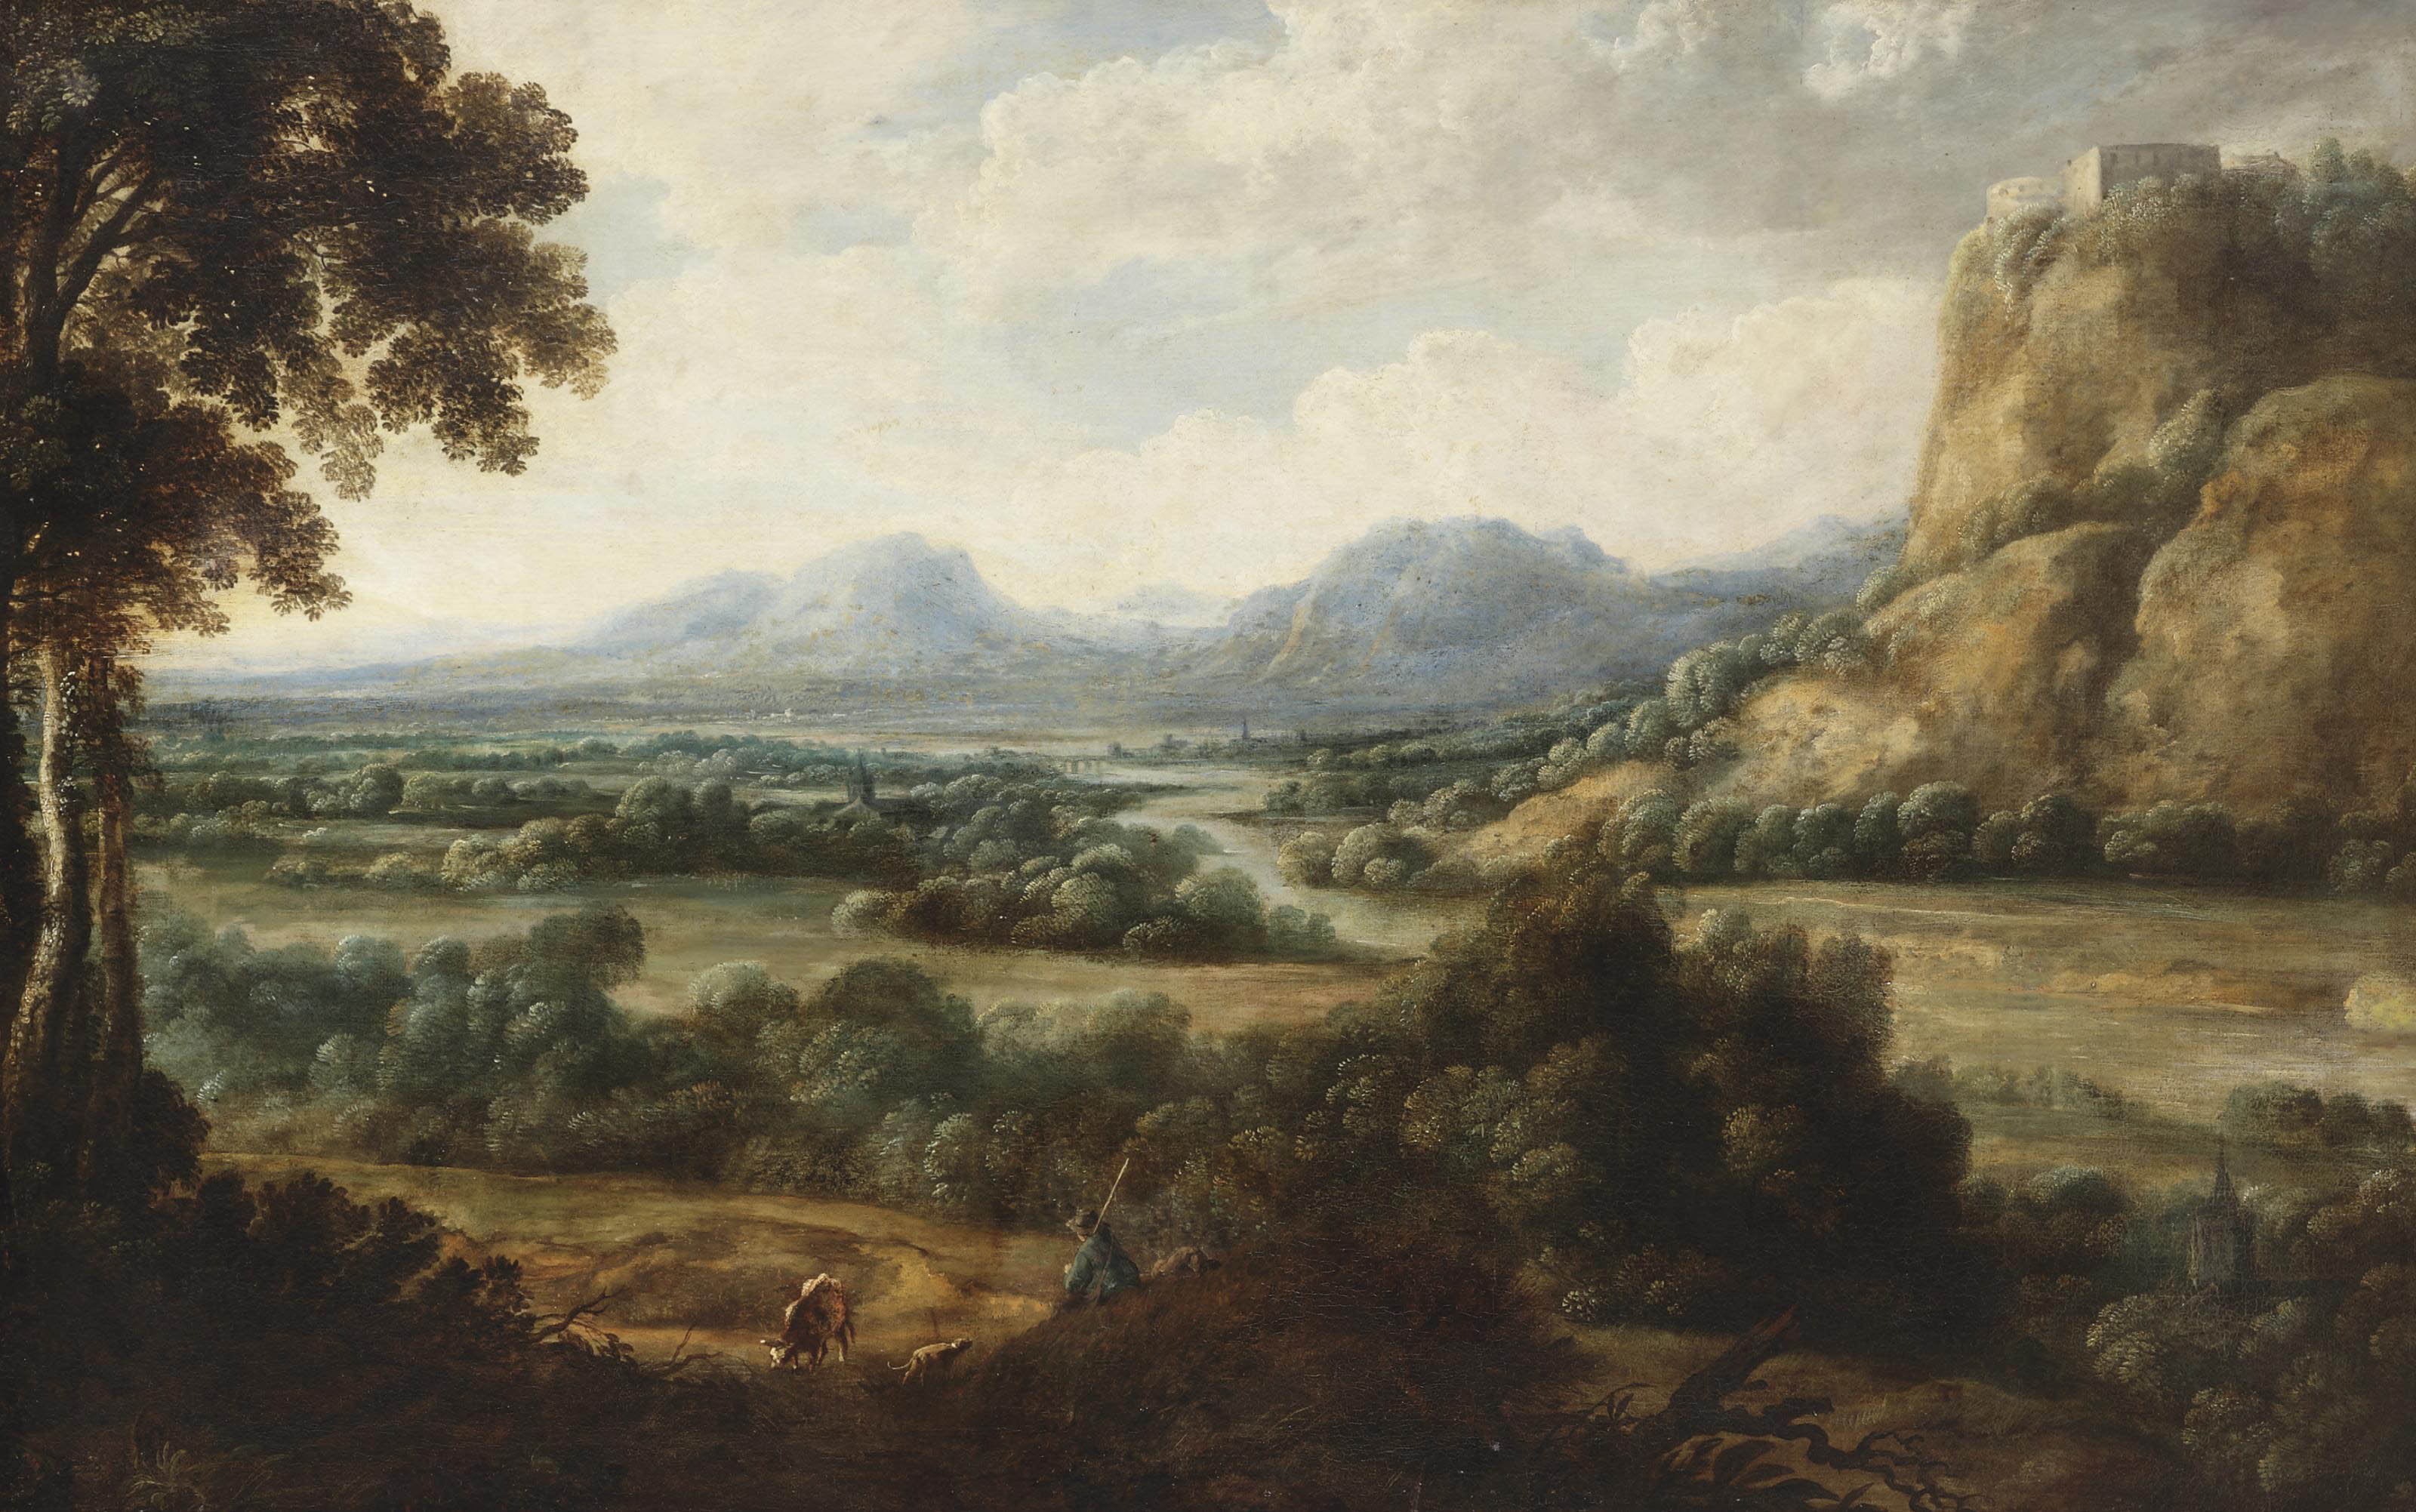 An extensive river landscape with a herdsman resting on a path, mountains beyond